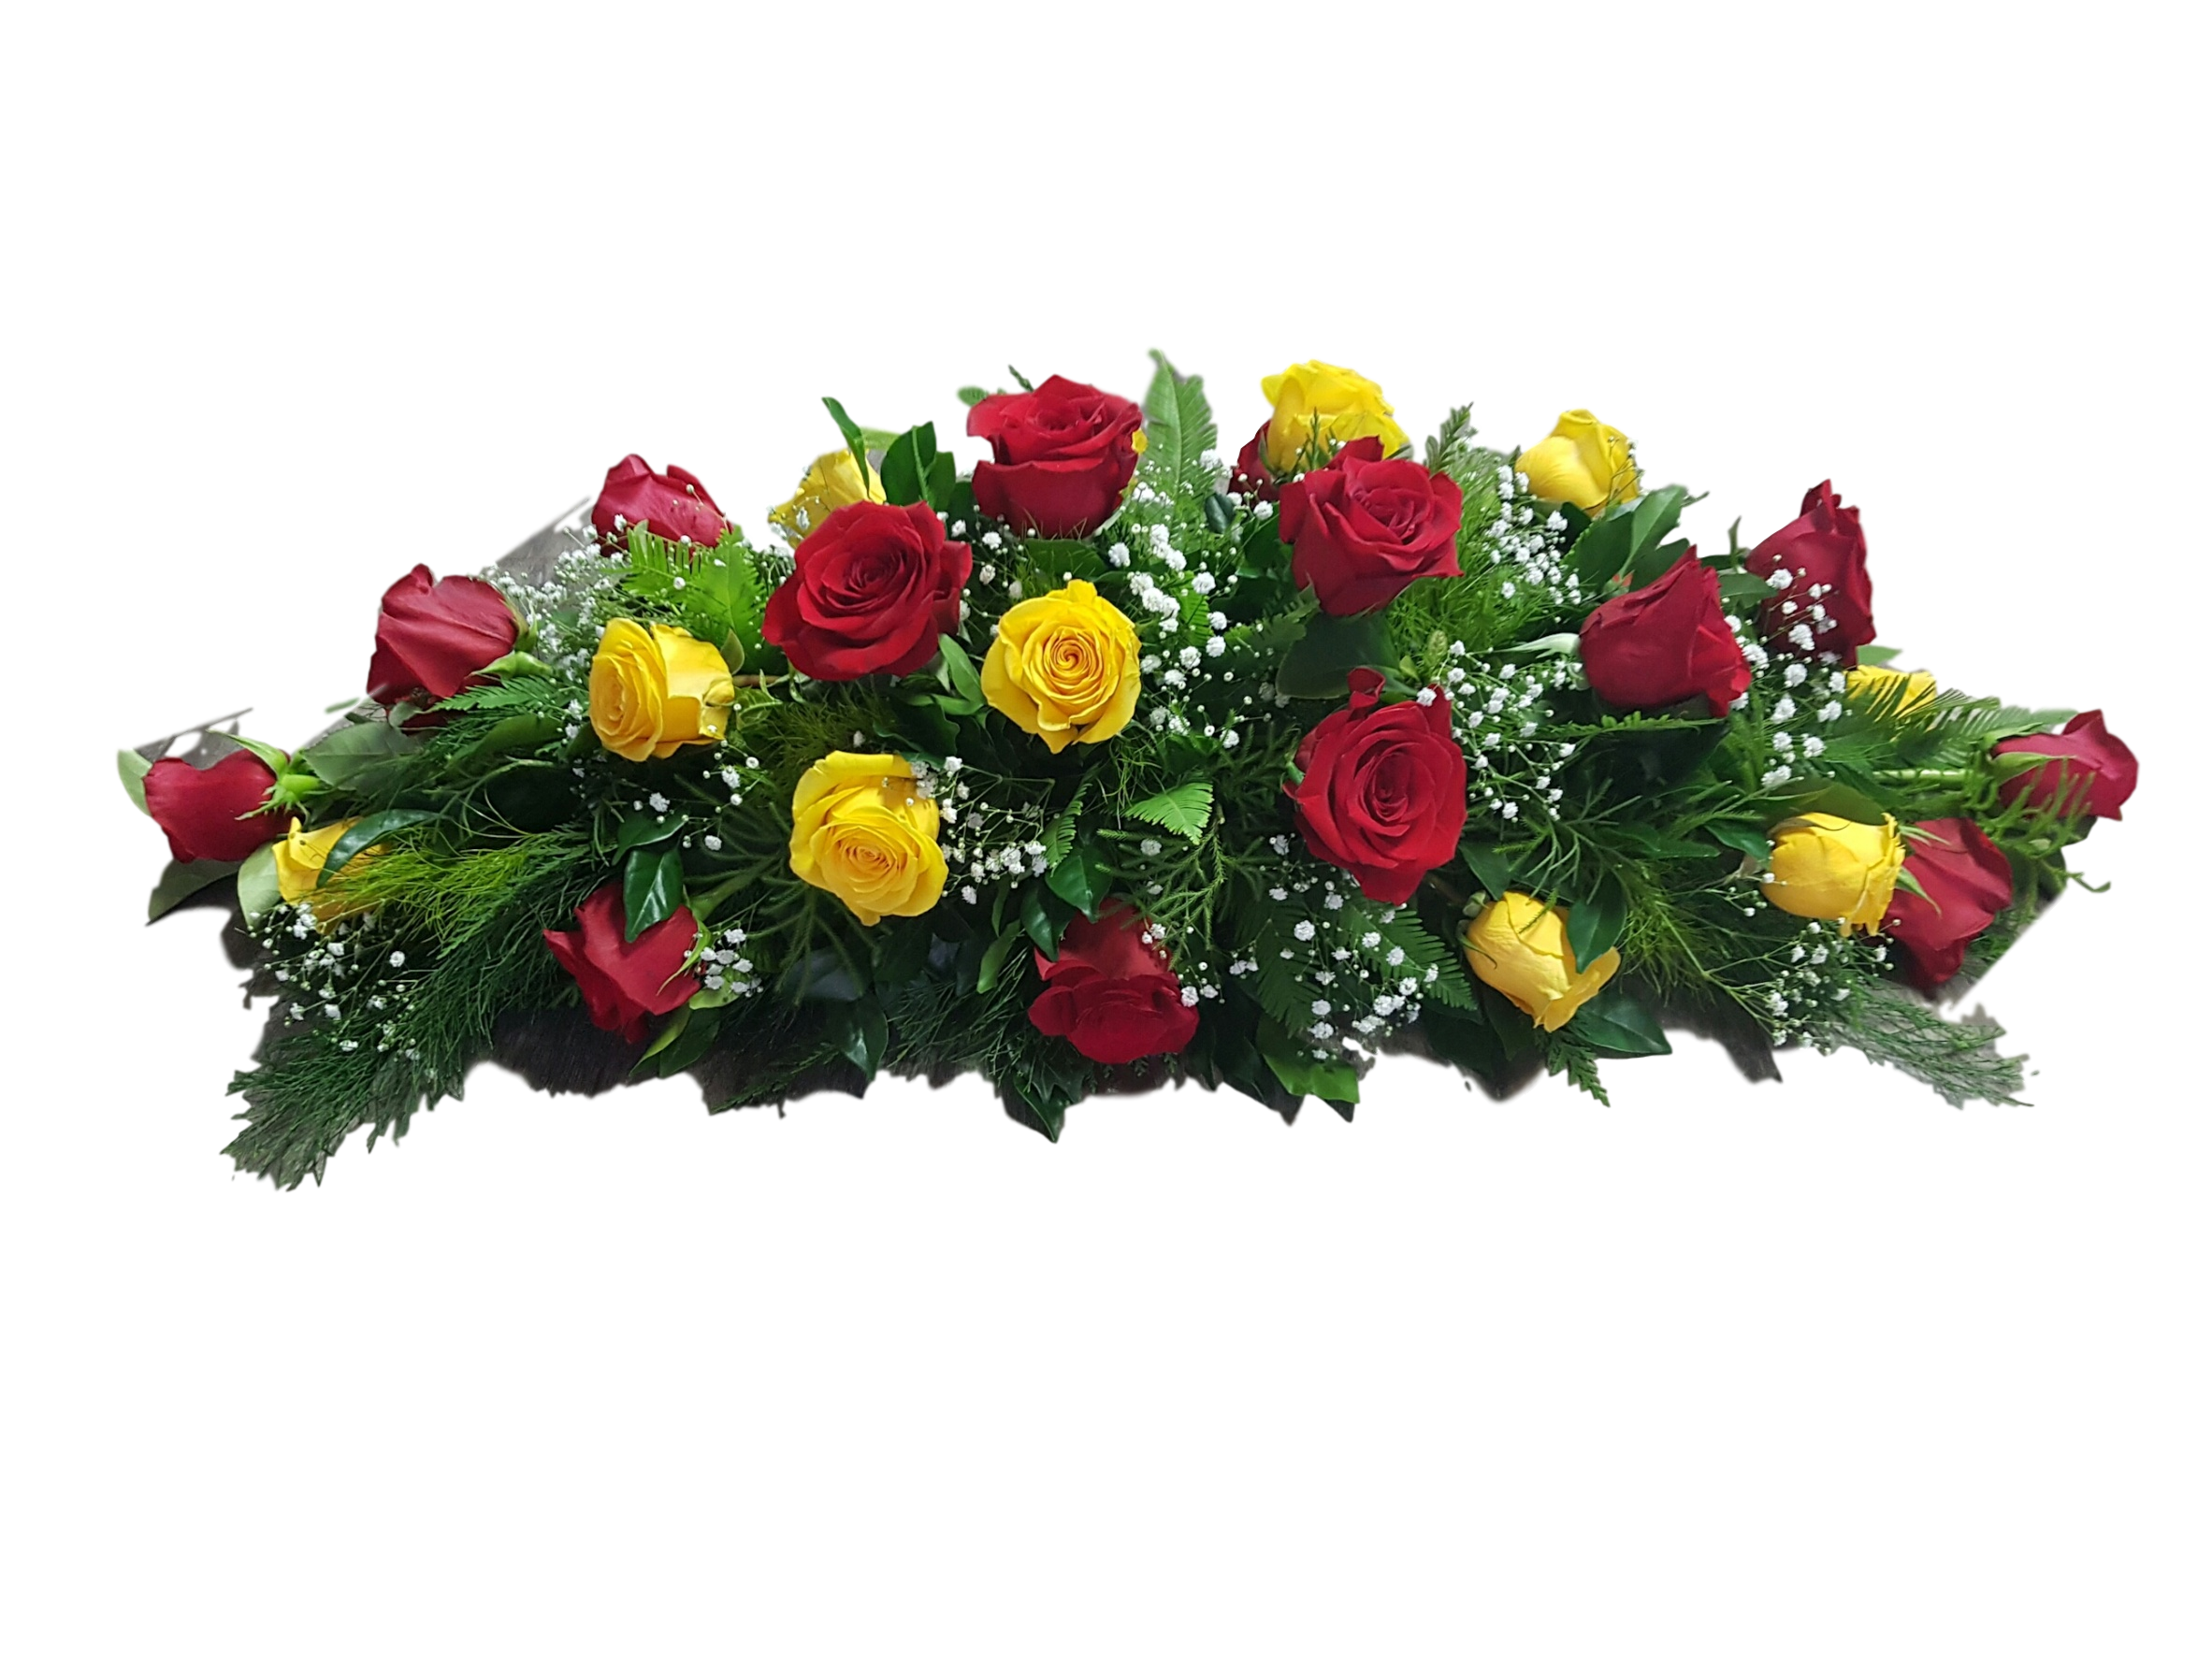 RED AND YELLOW ROSES AND A TOUCH OF BABY'S BREATH.